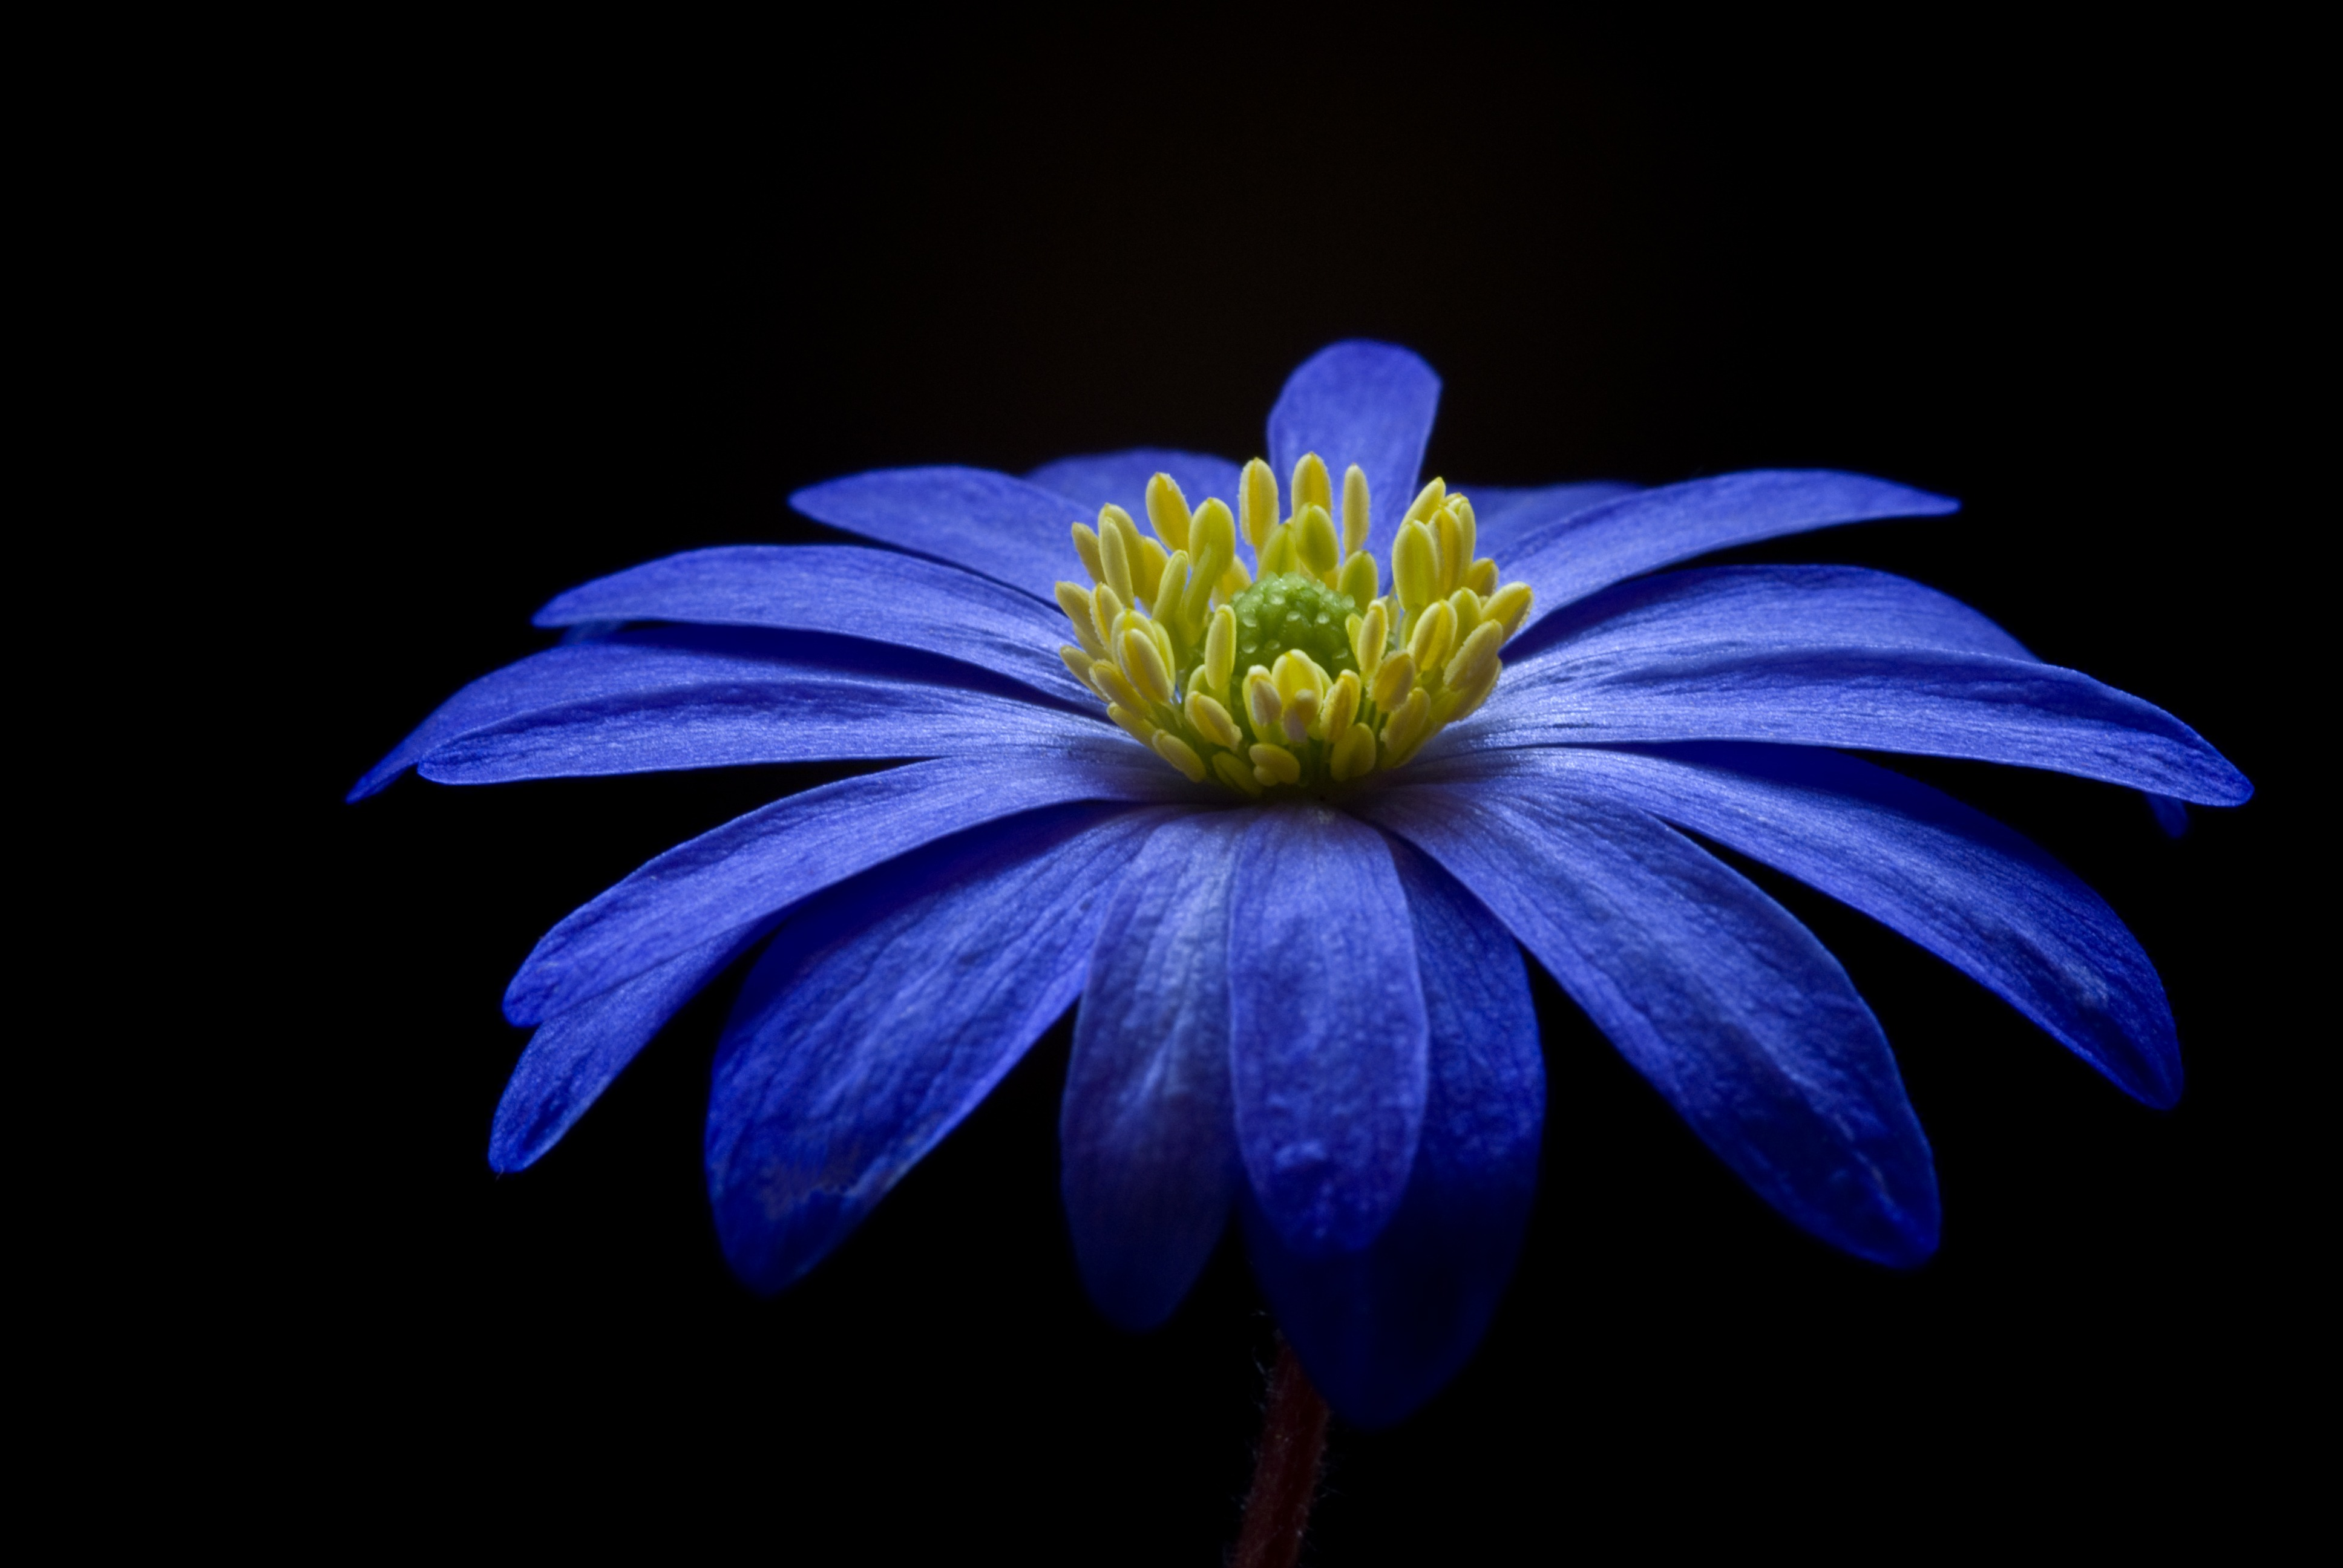 Blue yellow petaled flower free stock photo - Plants with blue flowers a splash of colors in the garden ...